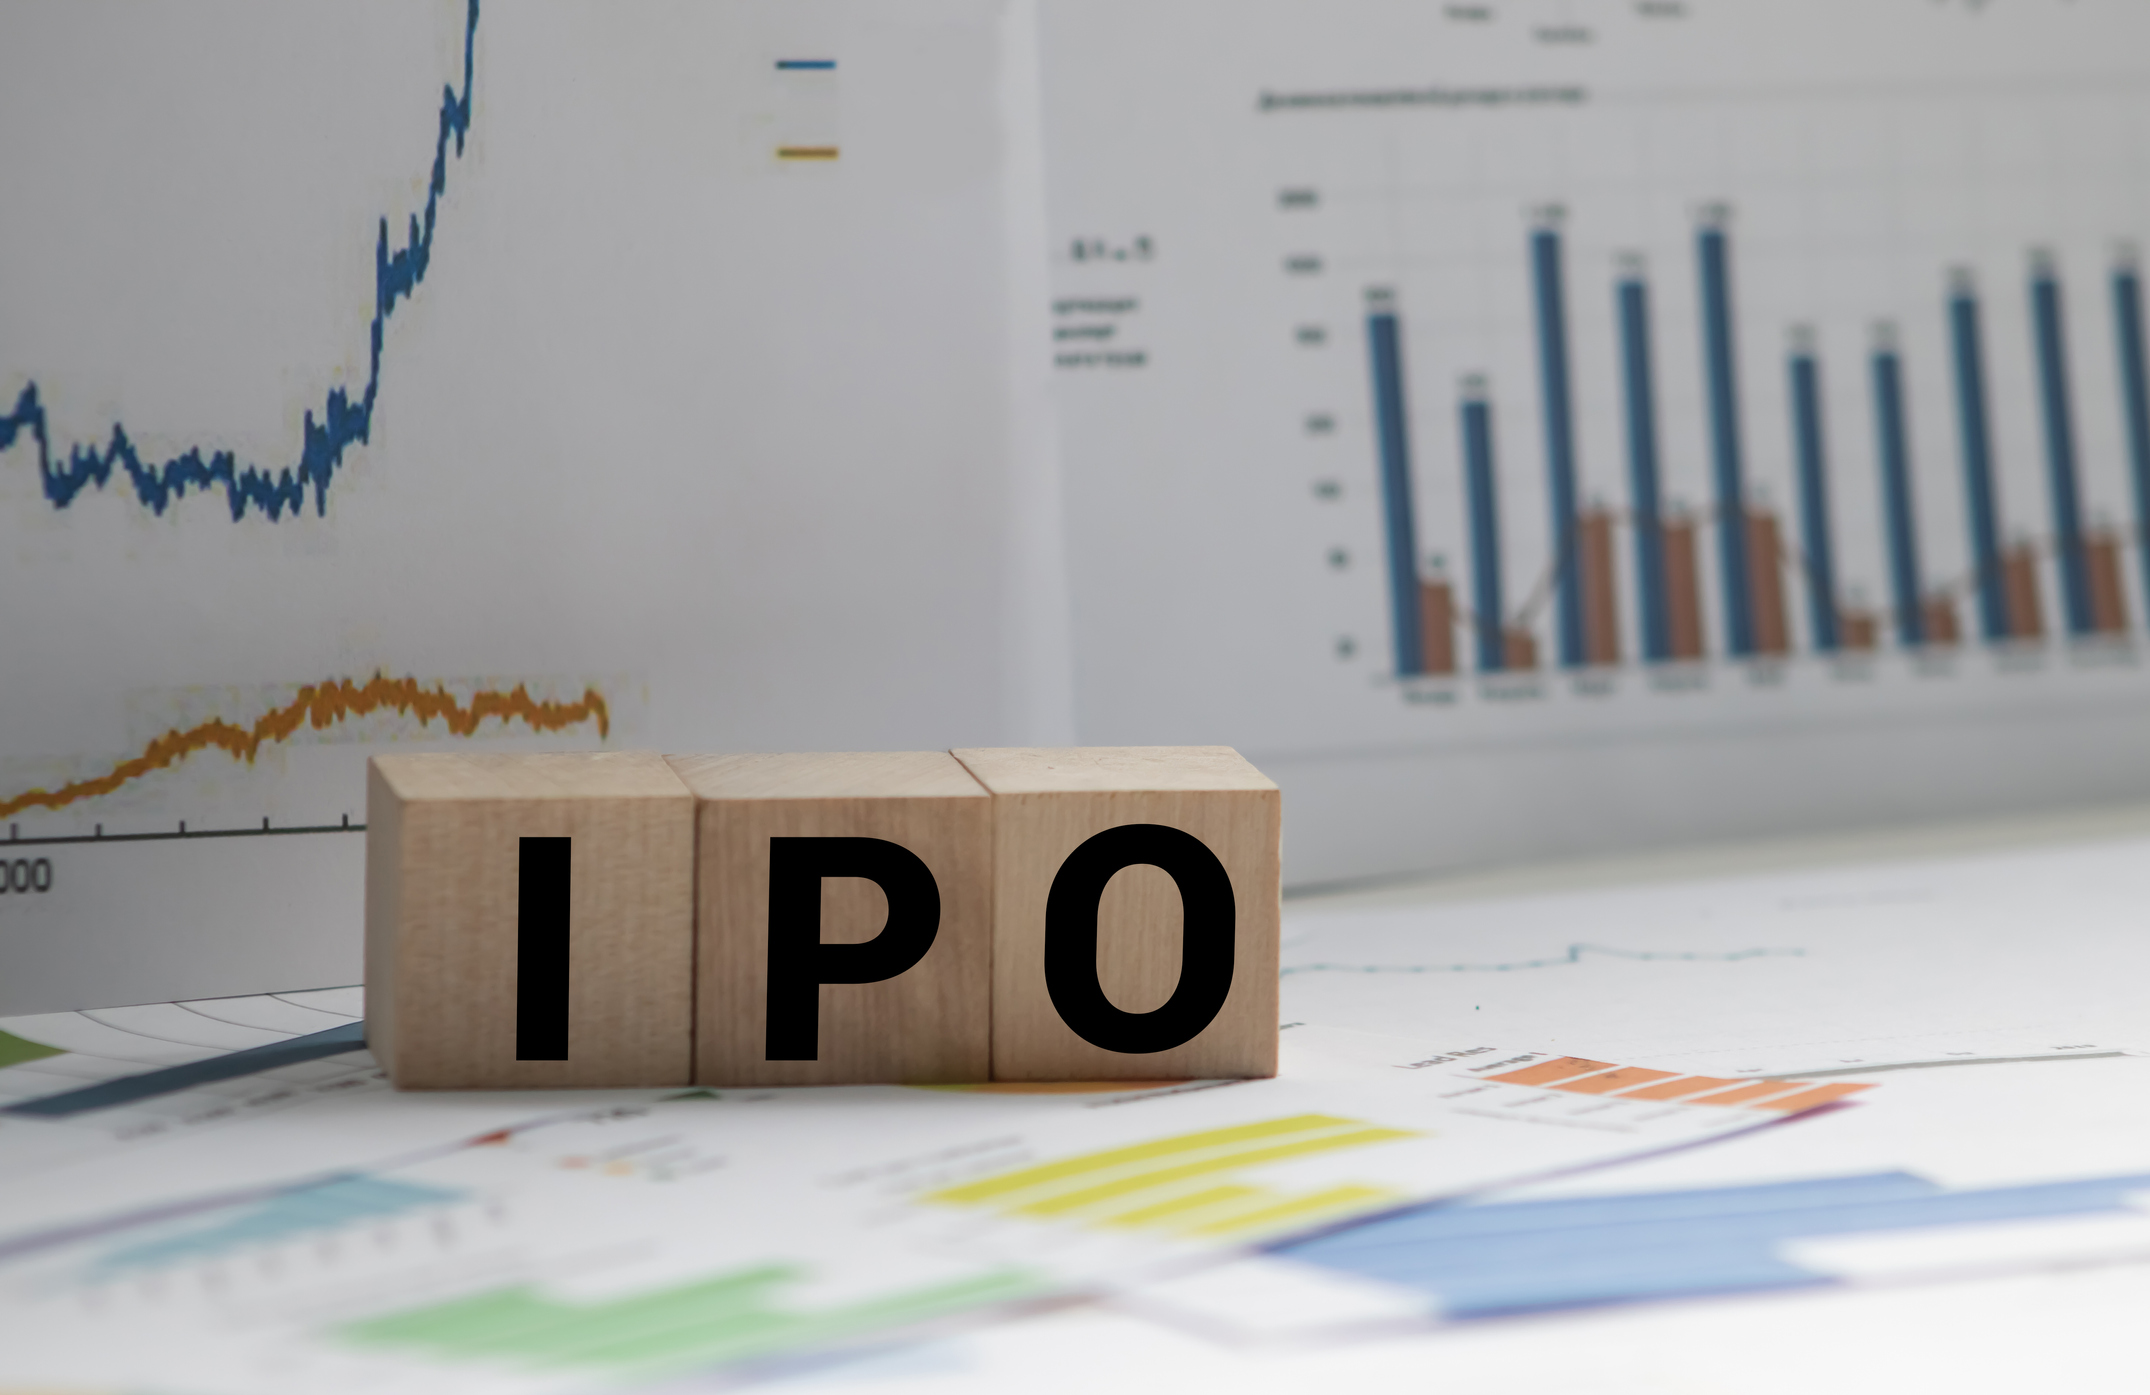 IPO spelled out using wooden toy blocks.